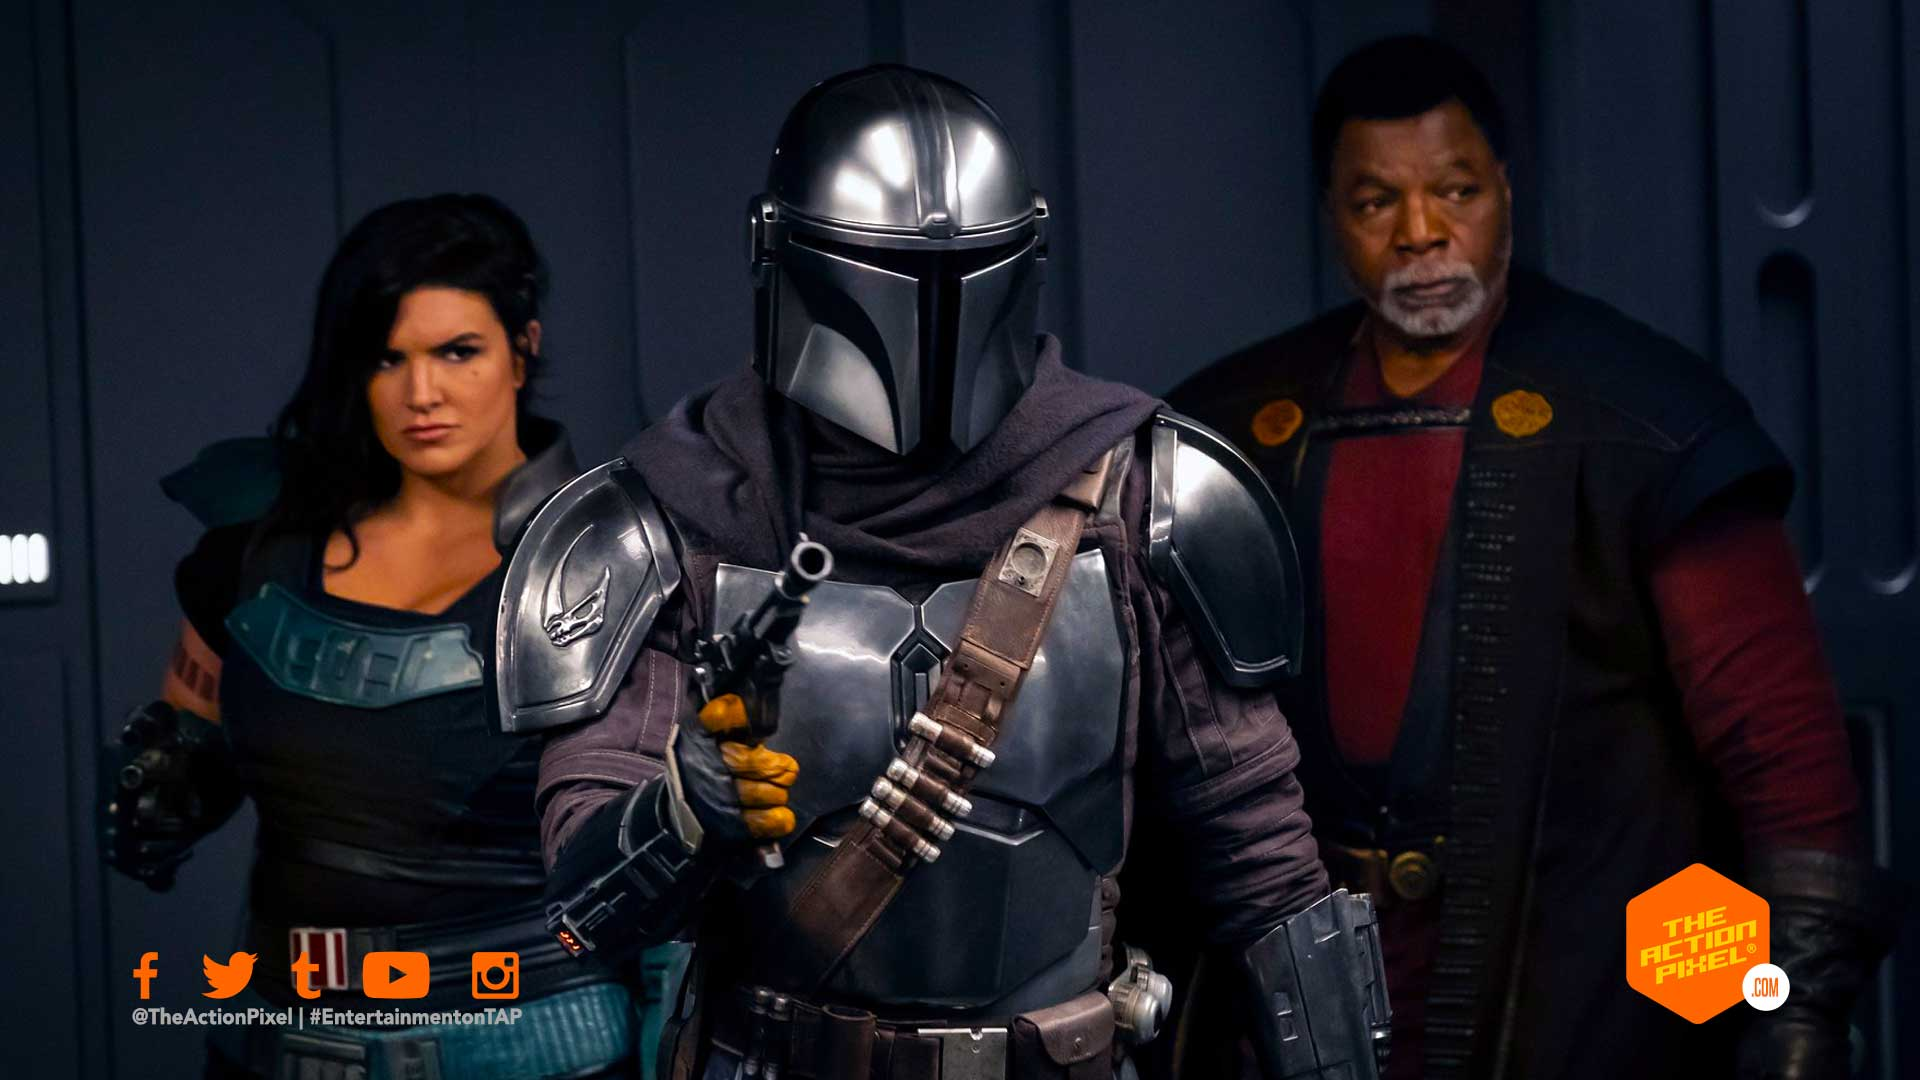 the mandalorian season 2, mandalorian, the mandalorian, the child, baby yoda, this is the way, mandalorian this is the way, the mandalorian season 2 trailer,the mandalorian season 2 preview, the action pixel, entertainment on tap